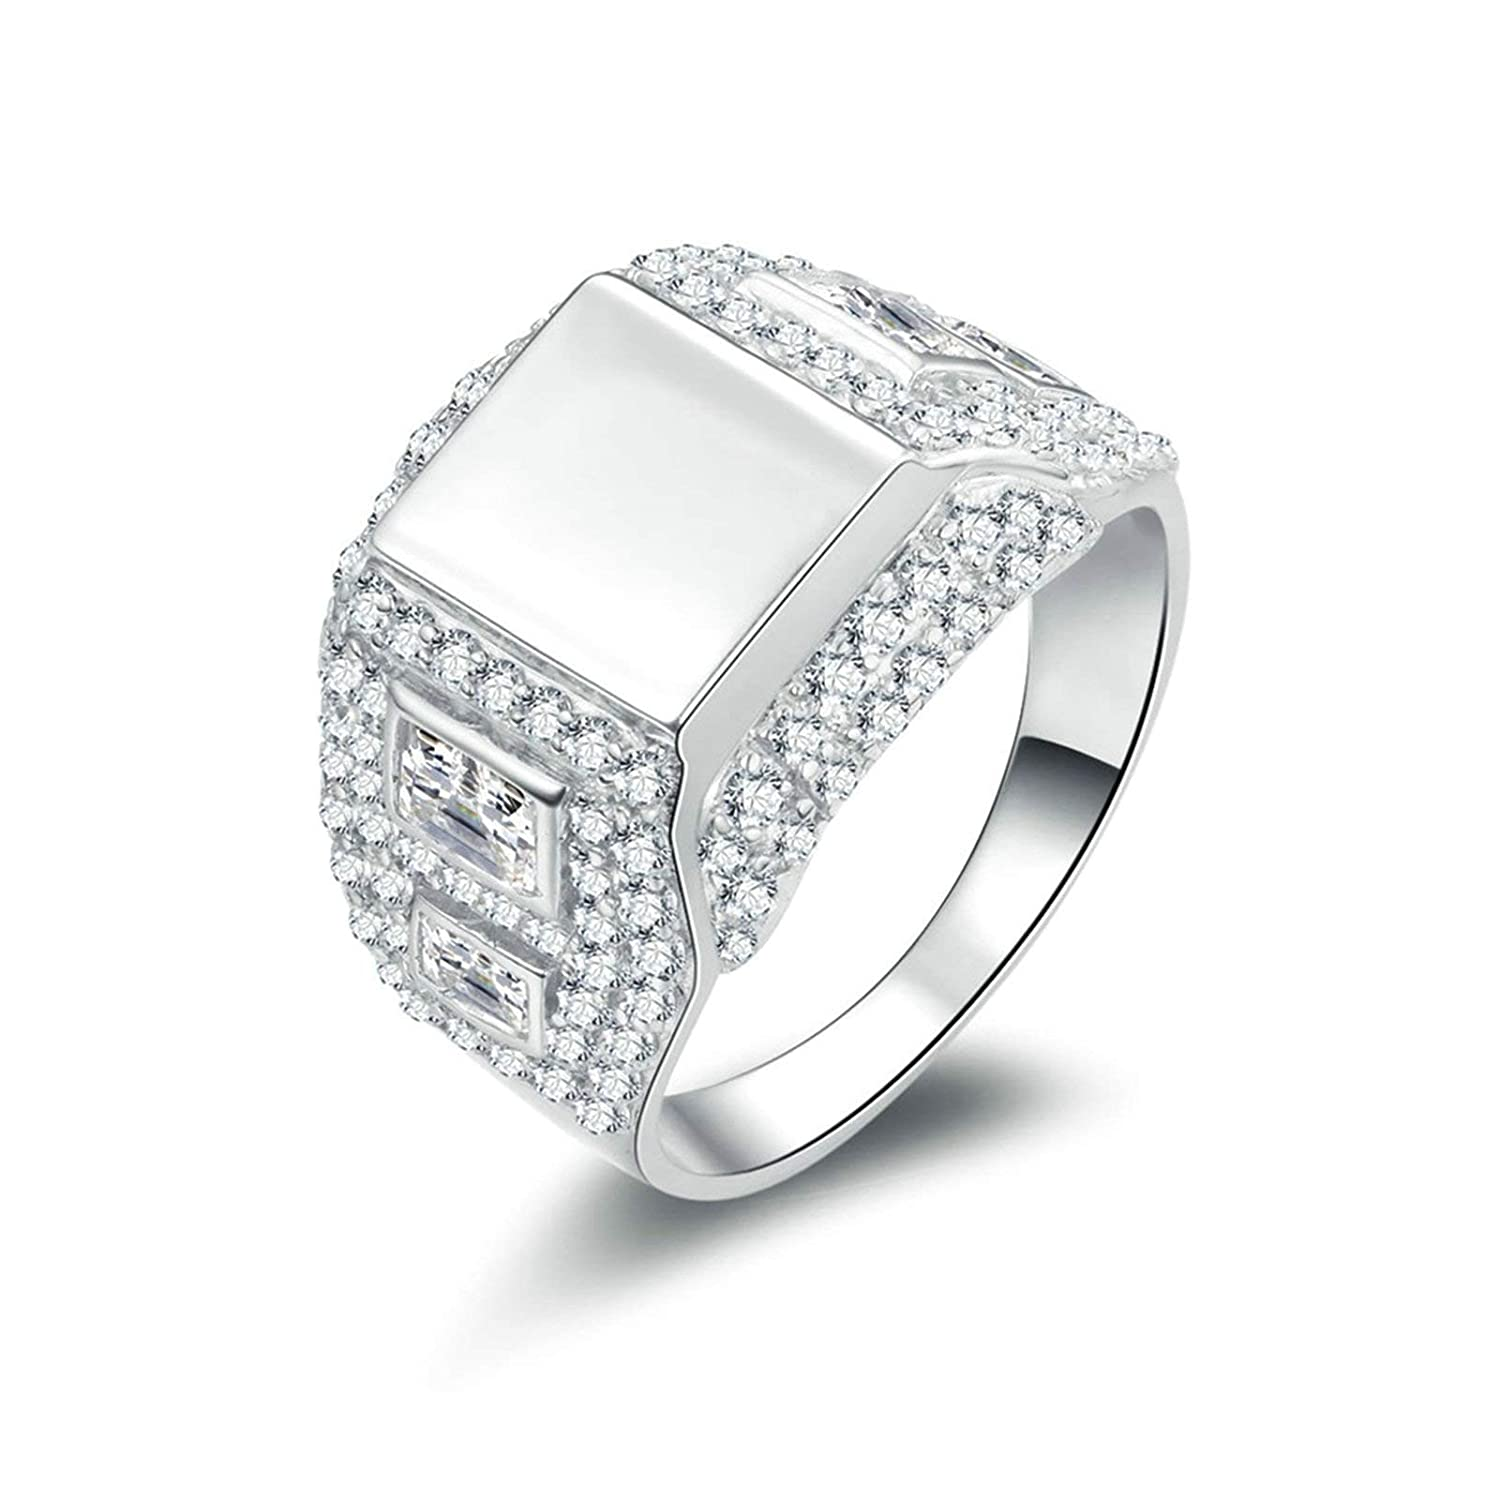 a7025dce39afa Aooaz Jewelry Wedding Ring Silver Material Hypoallergenic Ring ...